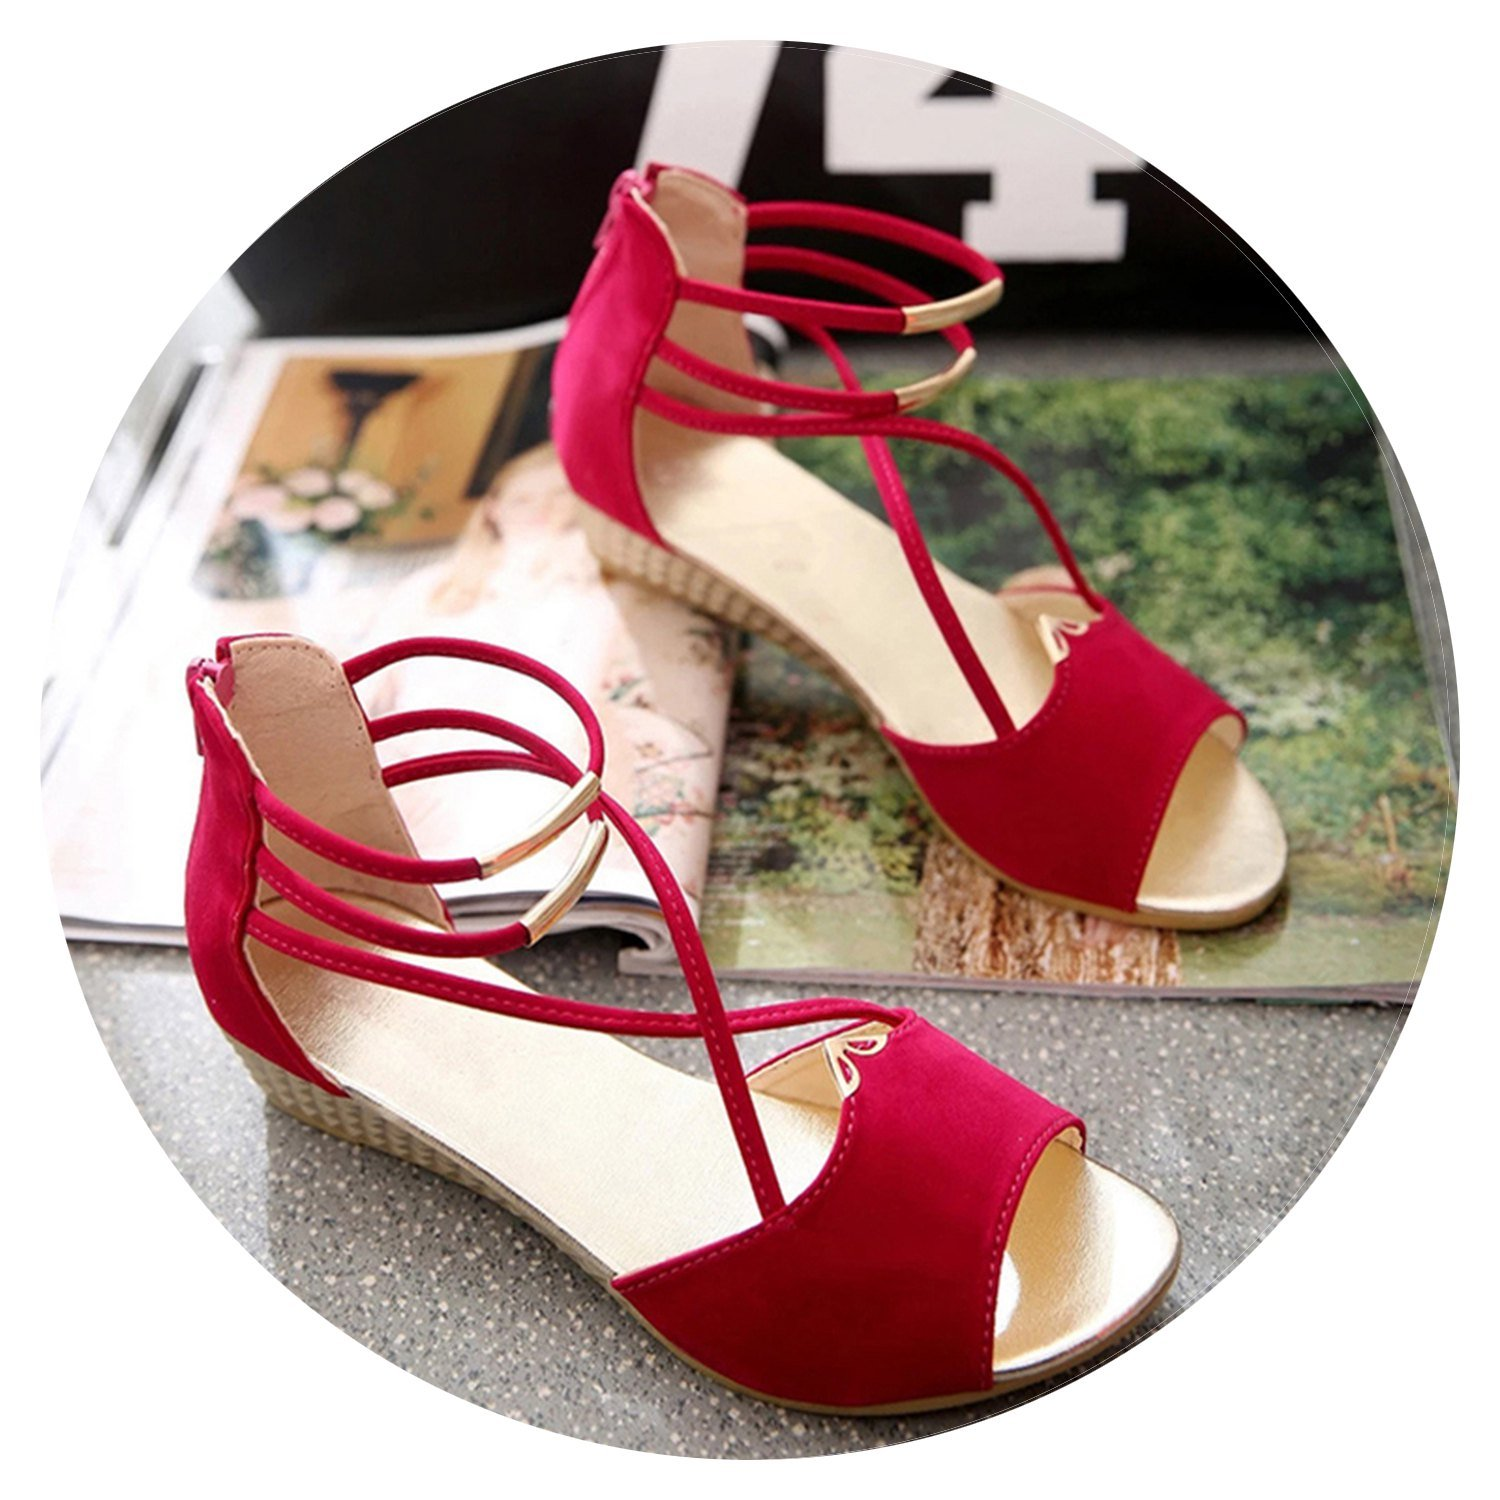 Women's Sandals Fashion Summer Wedge Shoes Casual Ladies Open Toe Gladiator Sandals B07DN3YVV5 6 B(M) US|Red